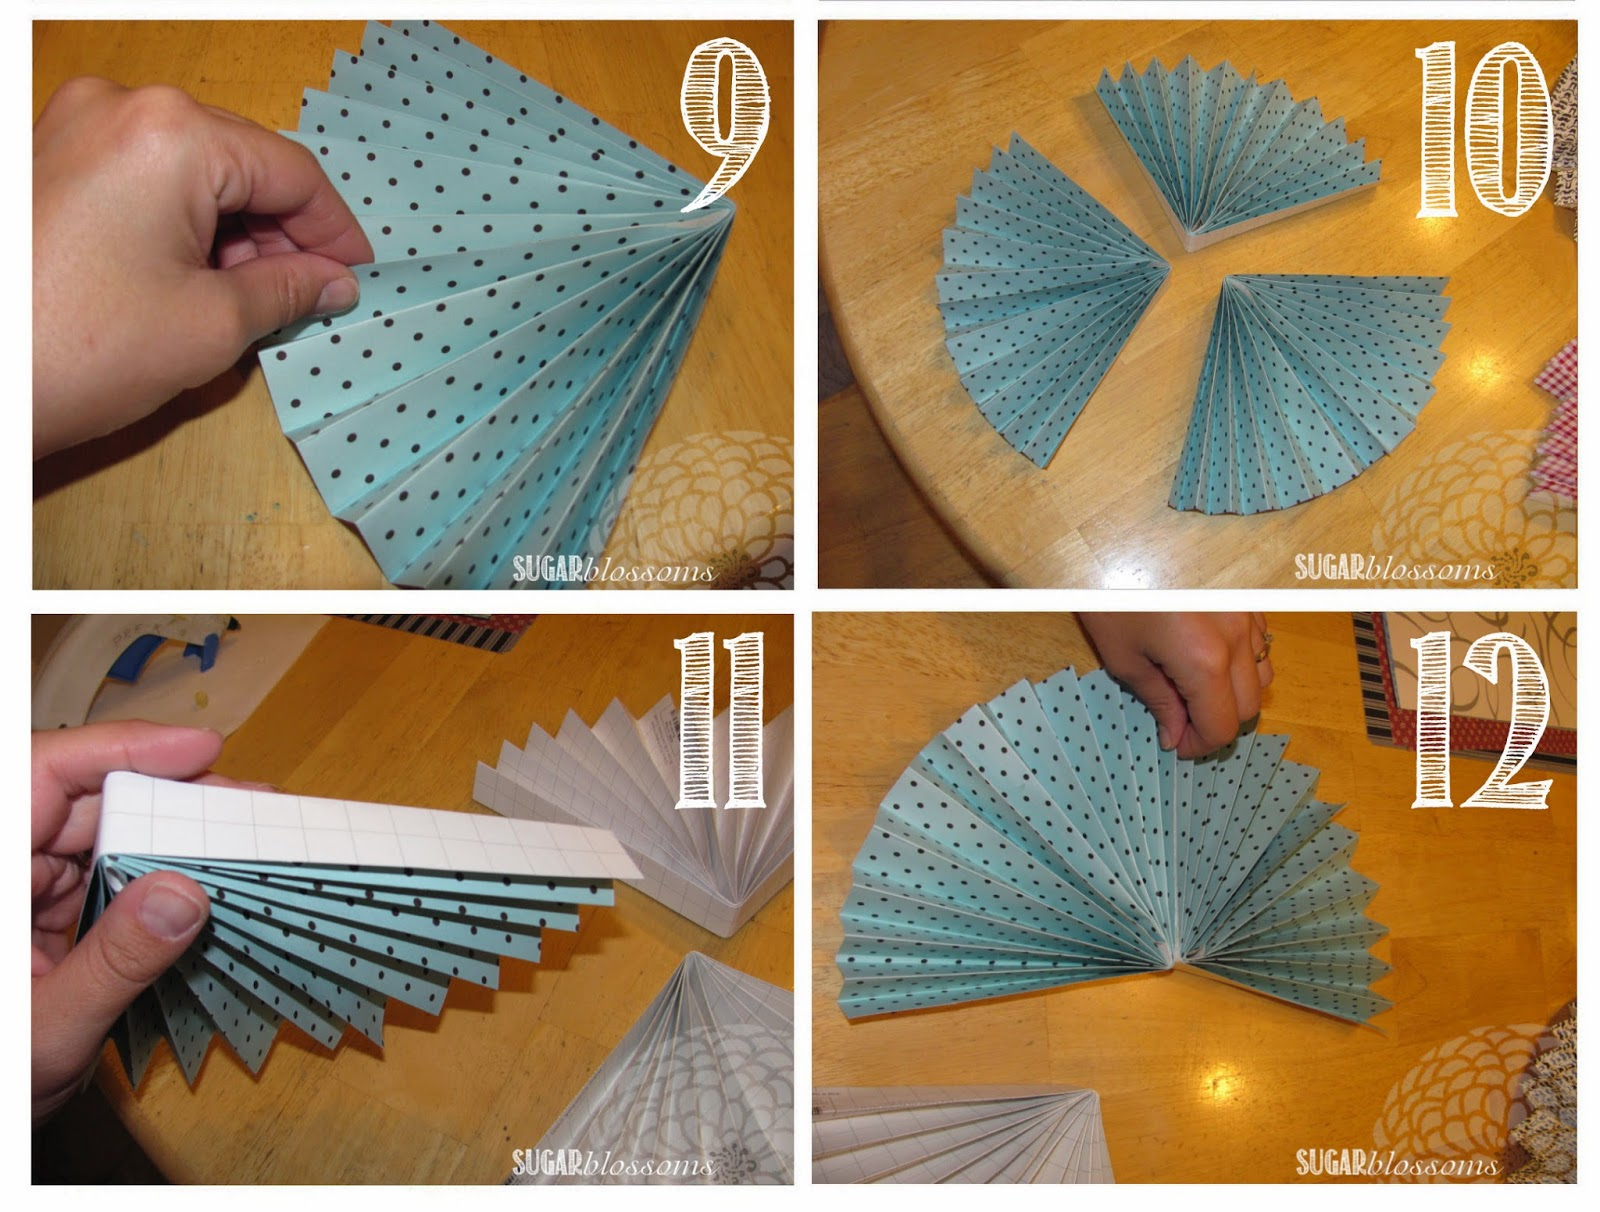 9 Pinch Fan Closed To Adhere Glue Both Sides